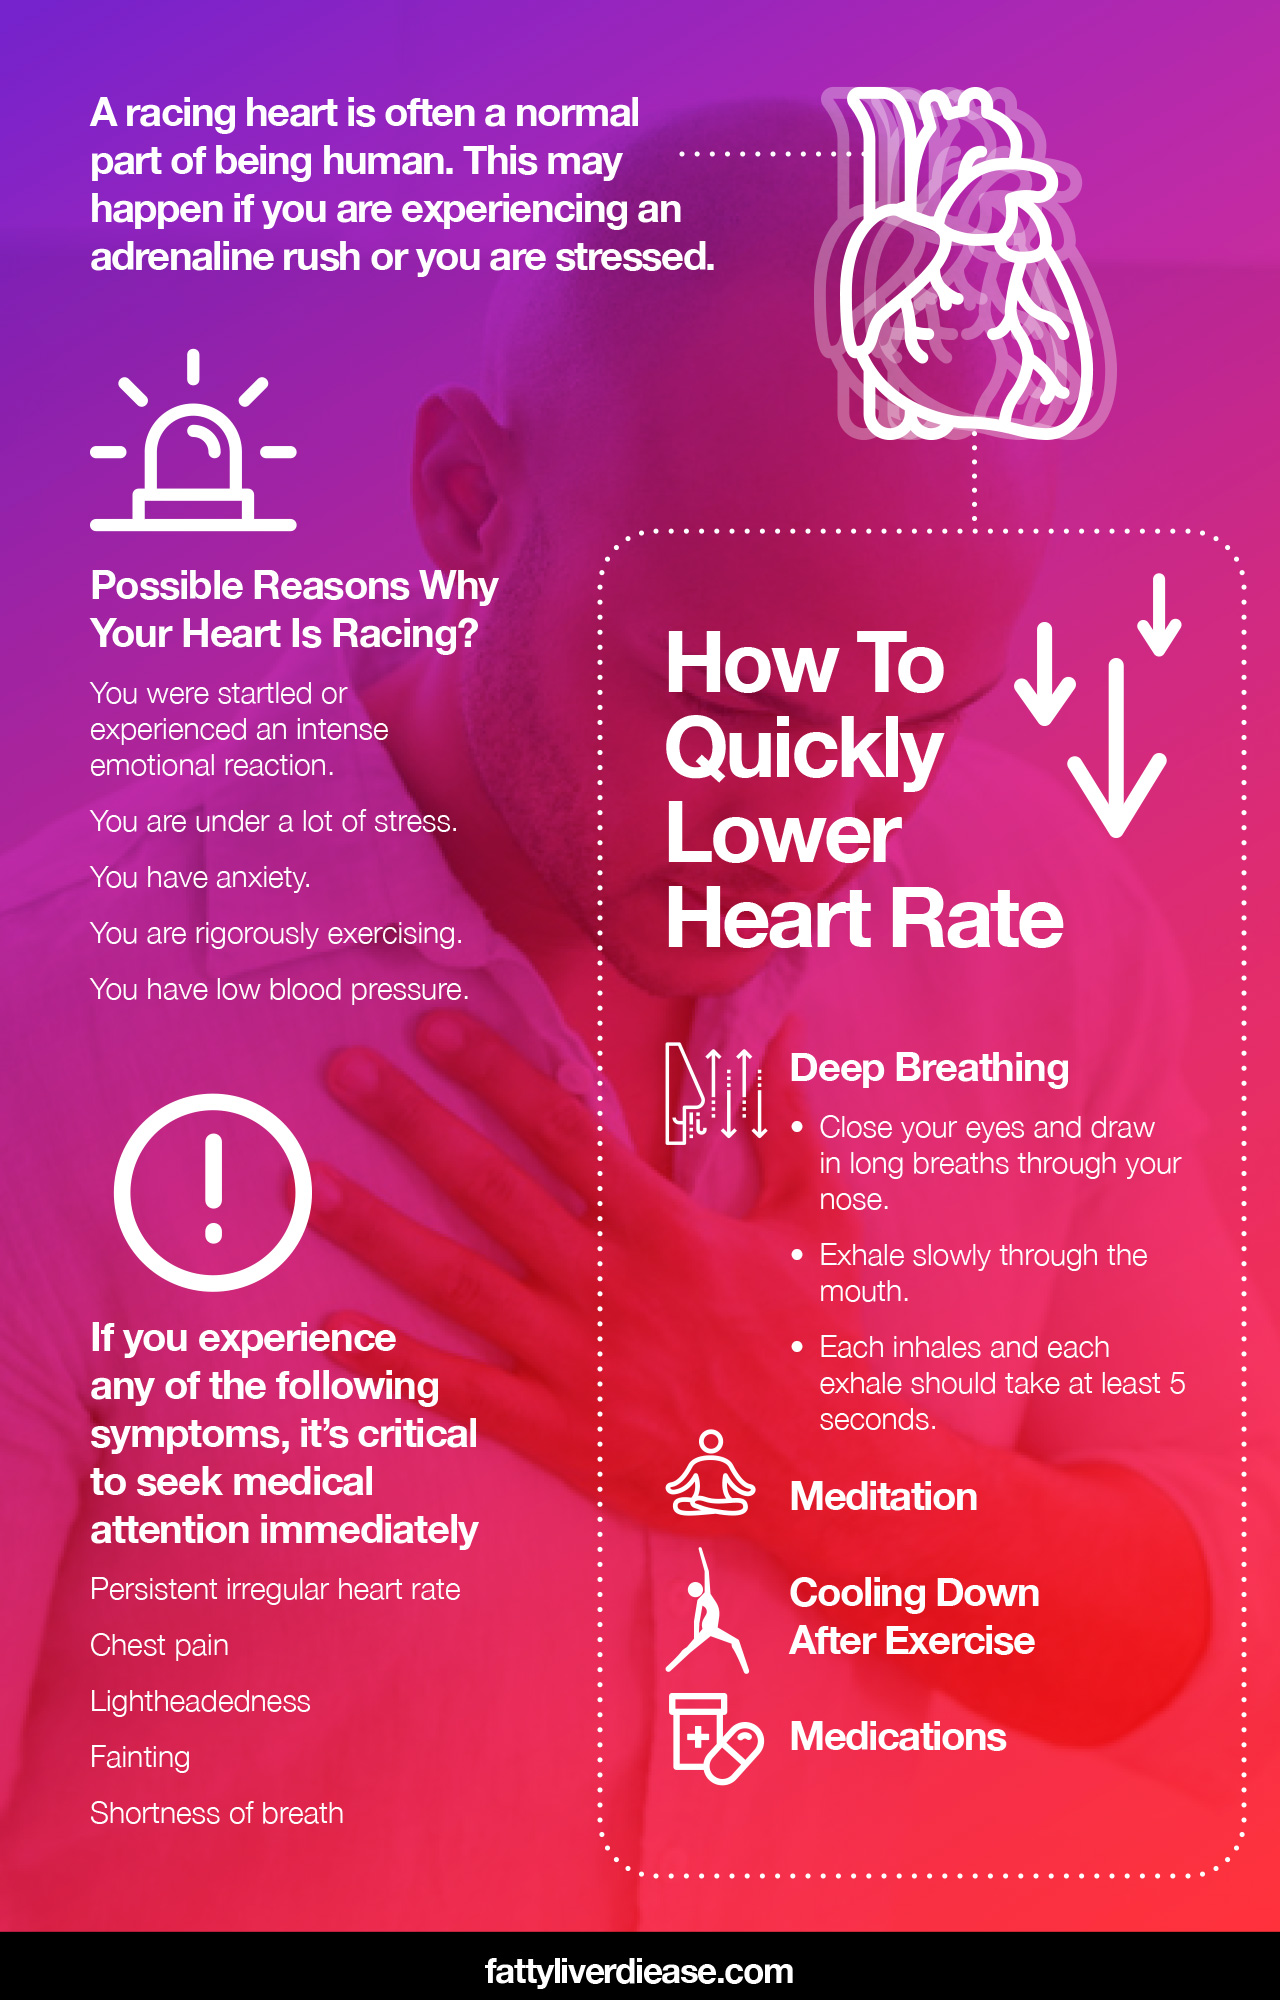 Possible Reasons Why Your Heart Is Racing?